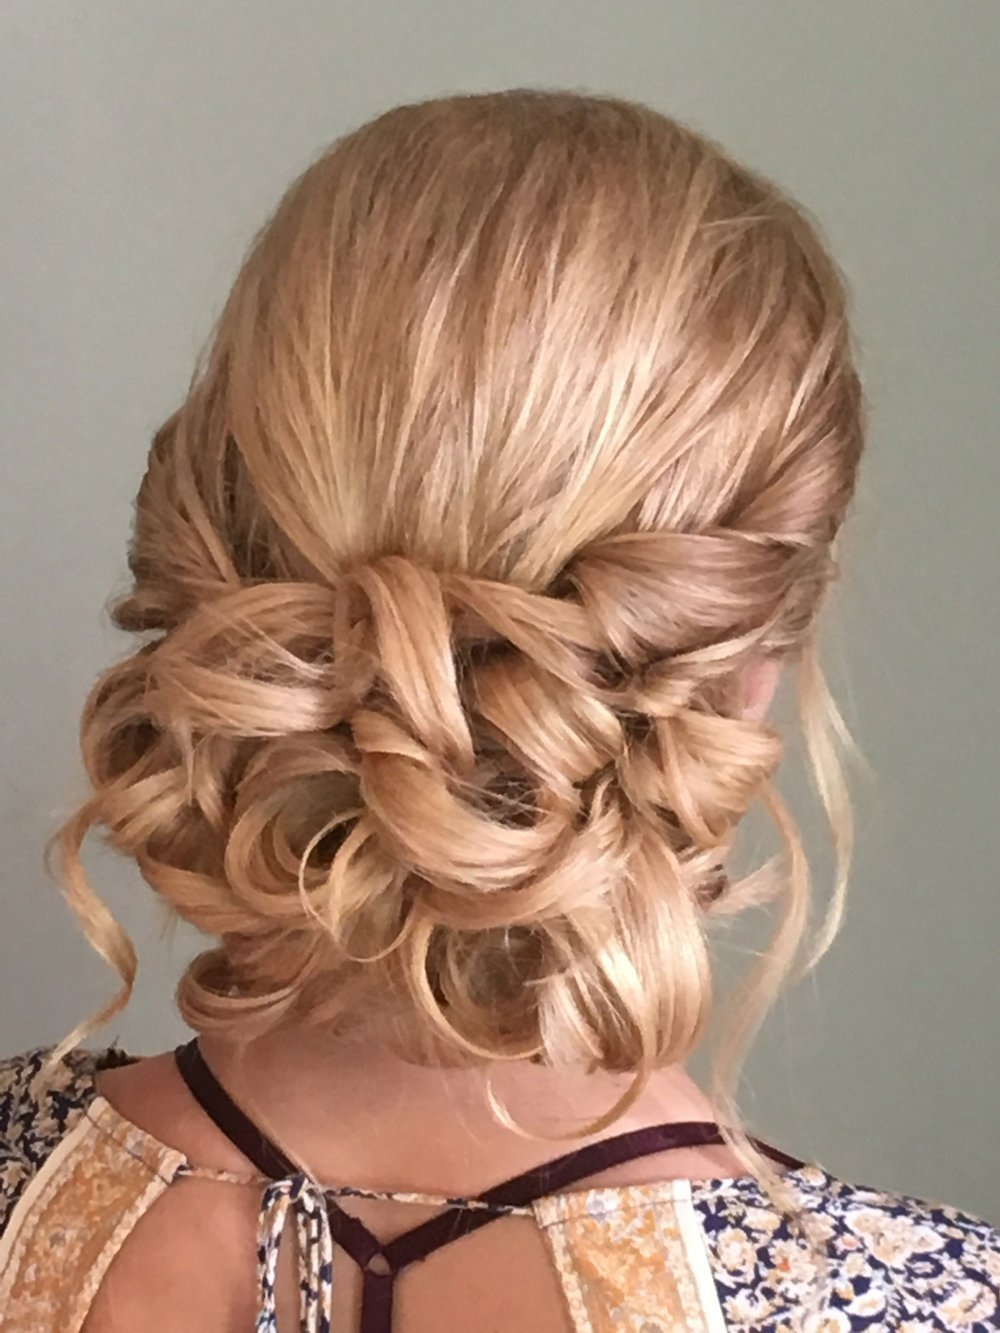 Blonde updo style Davines | Lari Manz Hair and Makeup